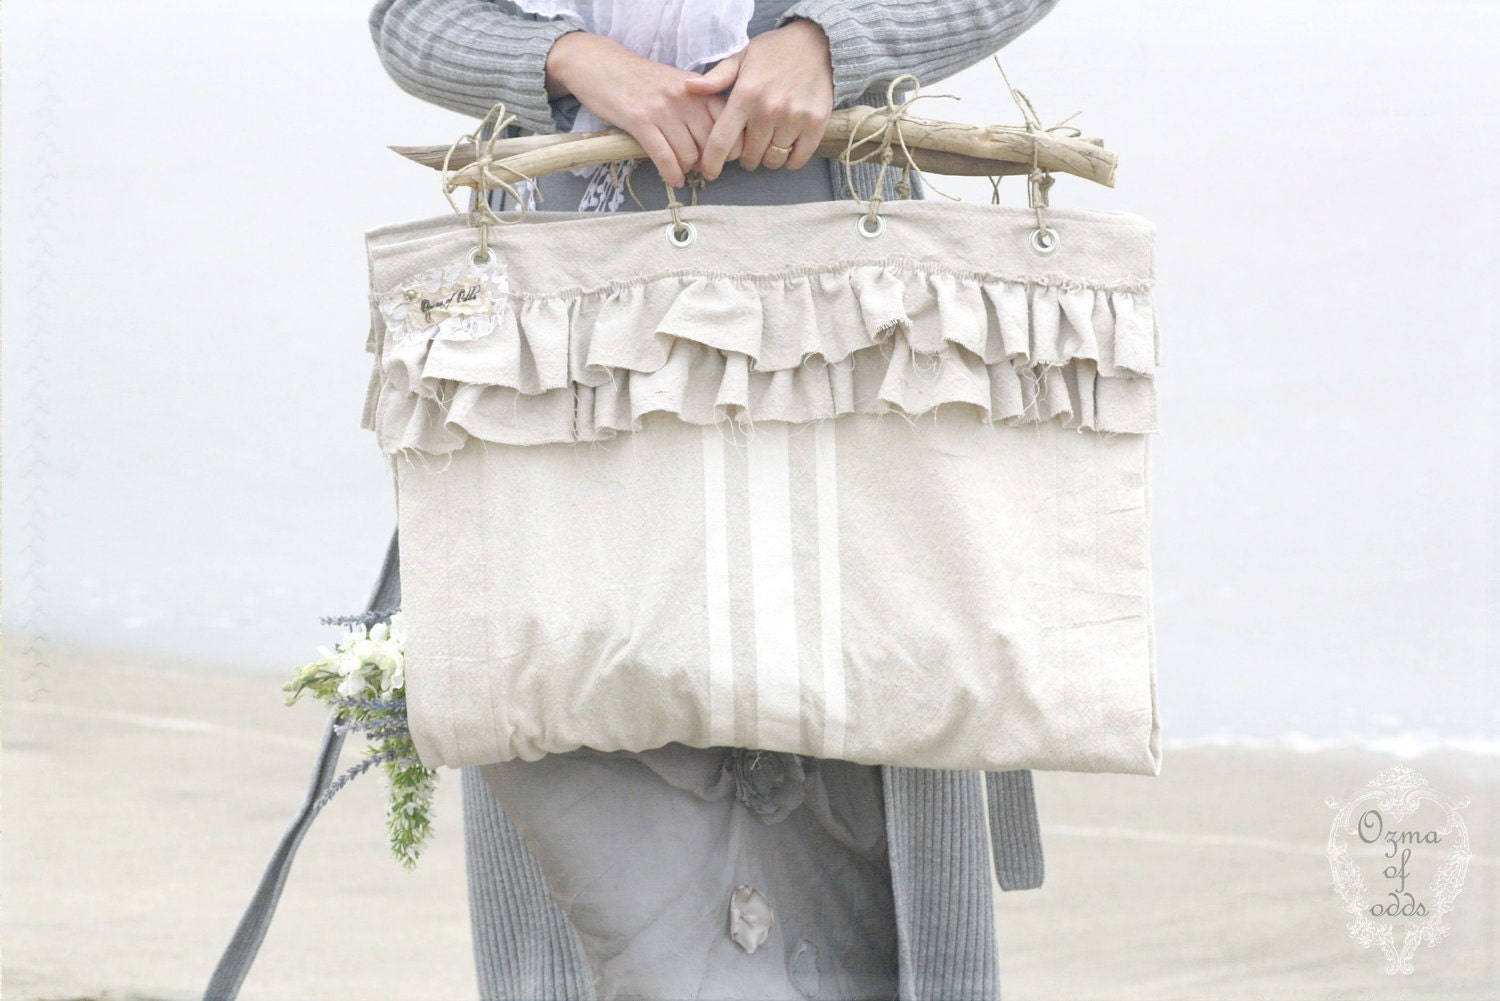 sea flower gatherer - a faux grain sack cloth whimsy tote - ozmaofodds